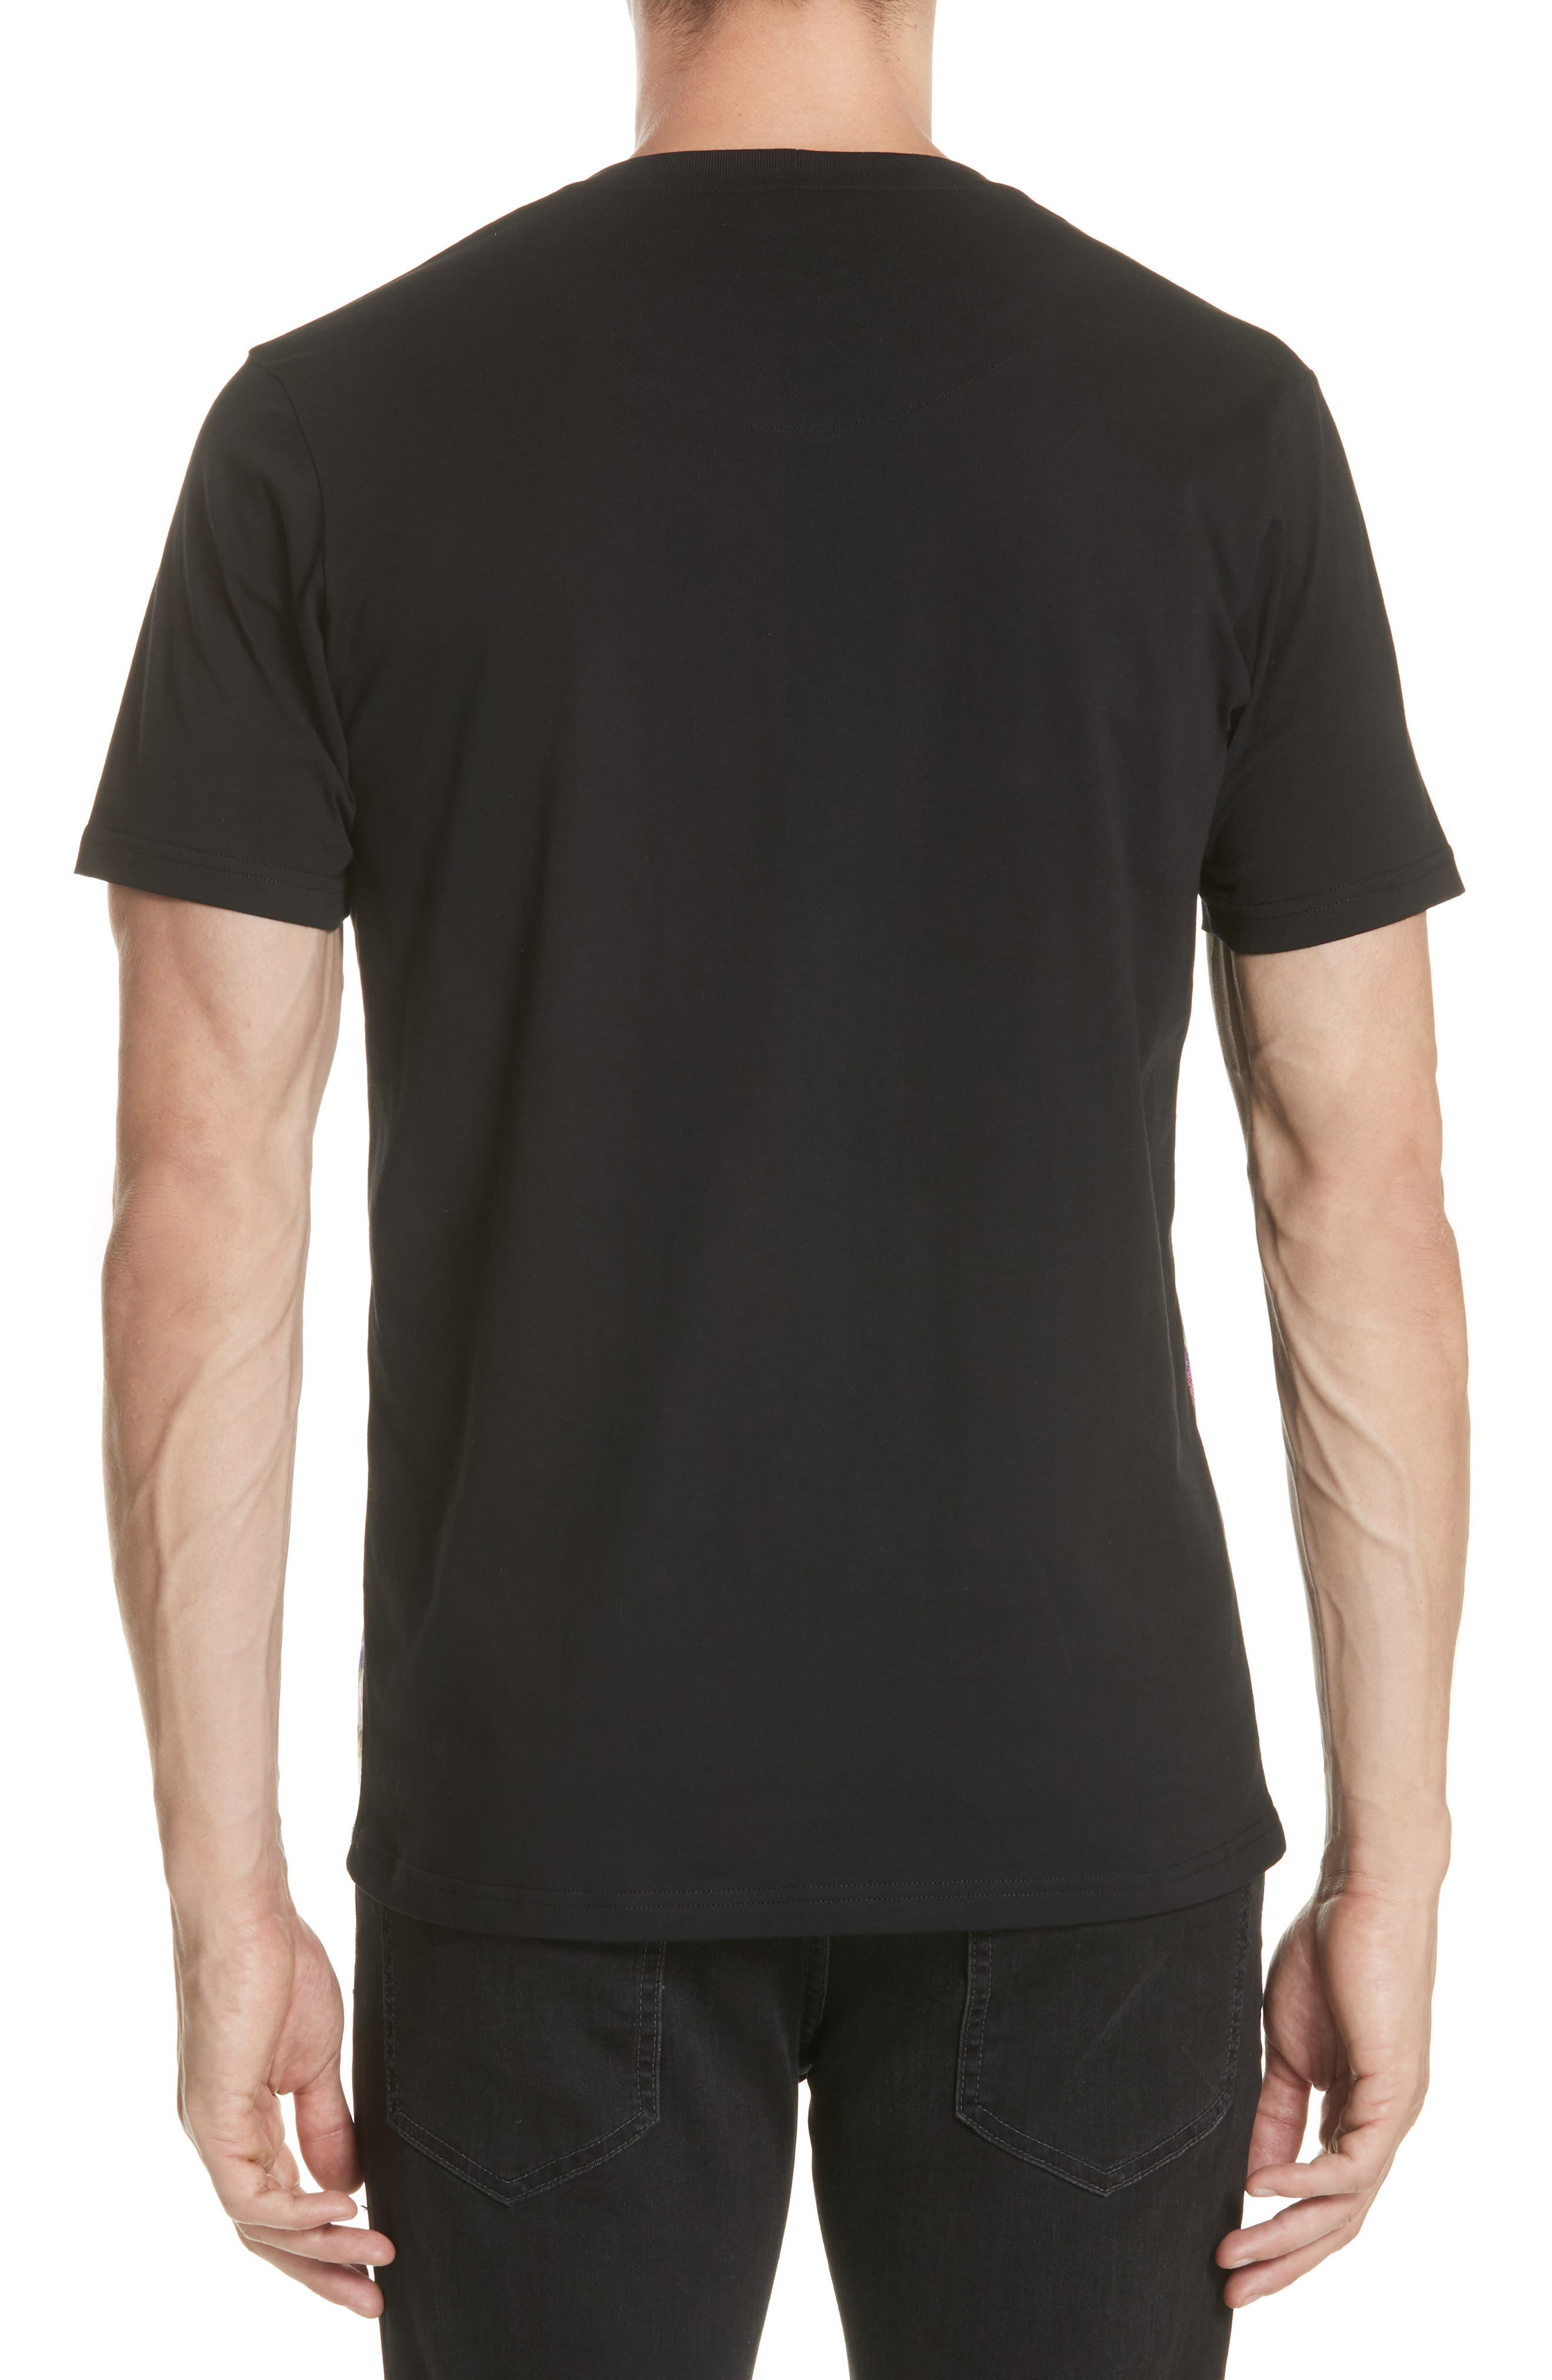 Uomo Print T-Shirt,                             Alternate thumbnail 2, color,                             Black/ Stampa